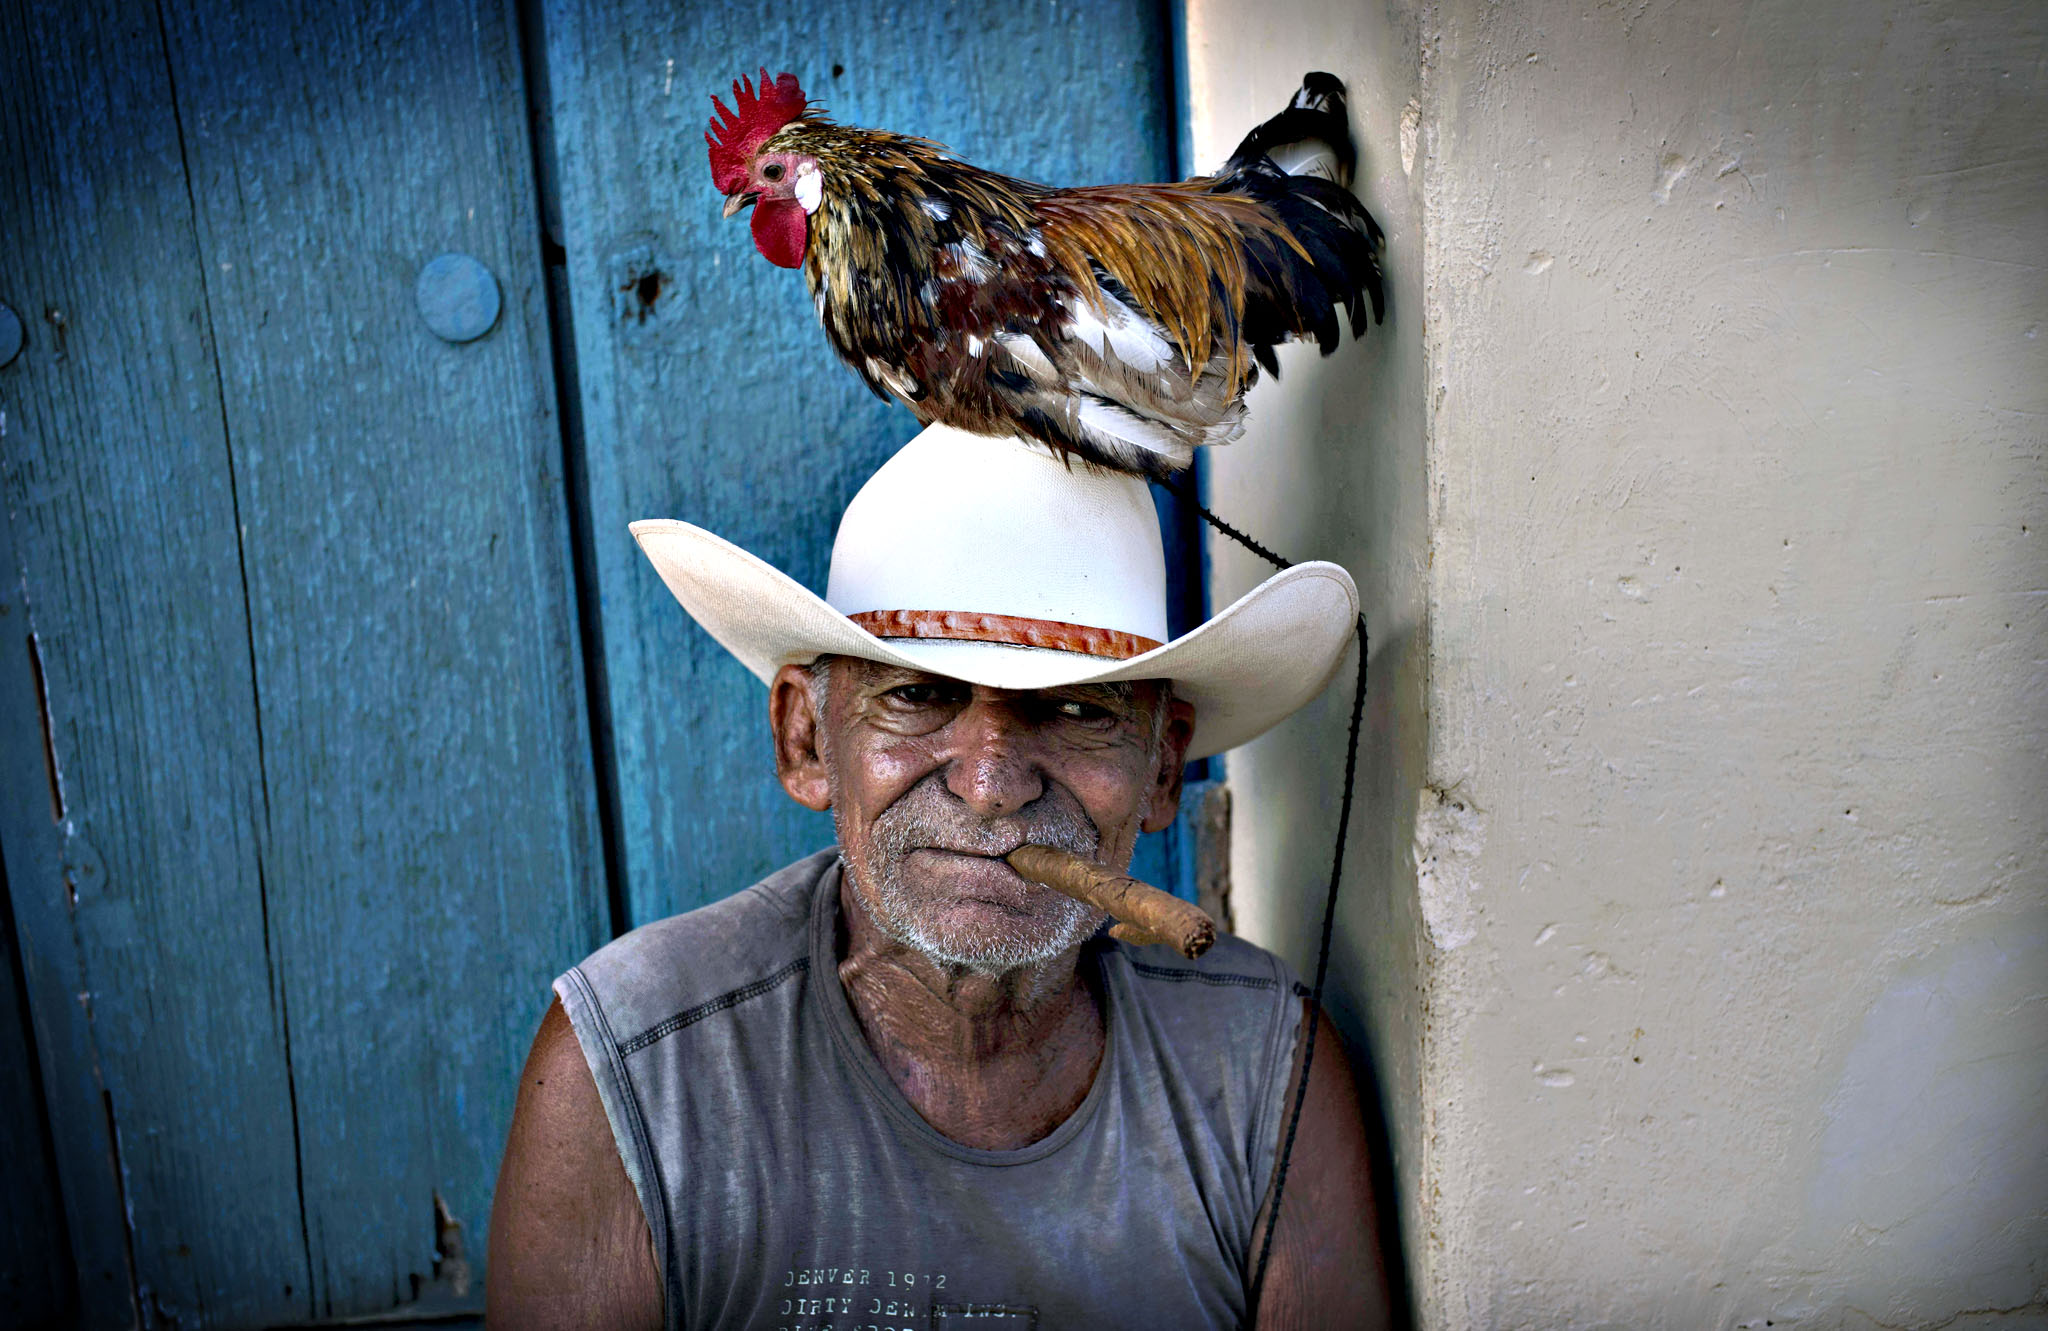 Jose poses with his rooster named Luis to be photographed for tourists in Trinidad, Cuba.